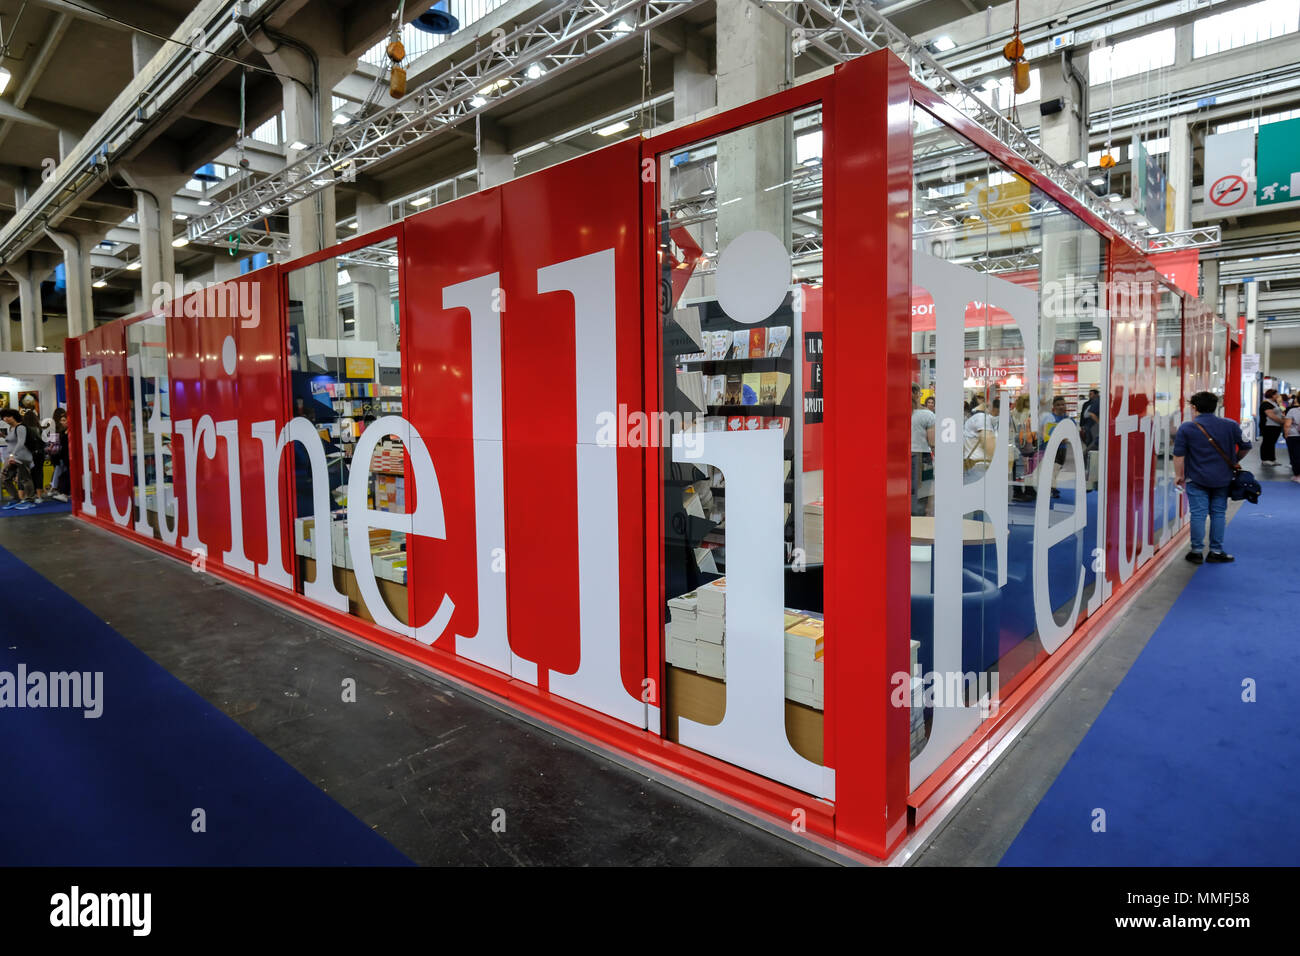 Turin, Piedmont, Italy, 10th May, 2018. International Book fair 2018,first day.Feltrinelli publishe'rs stand Credit: RENATO VALTERZA/Alamy Live News - Stock Image